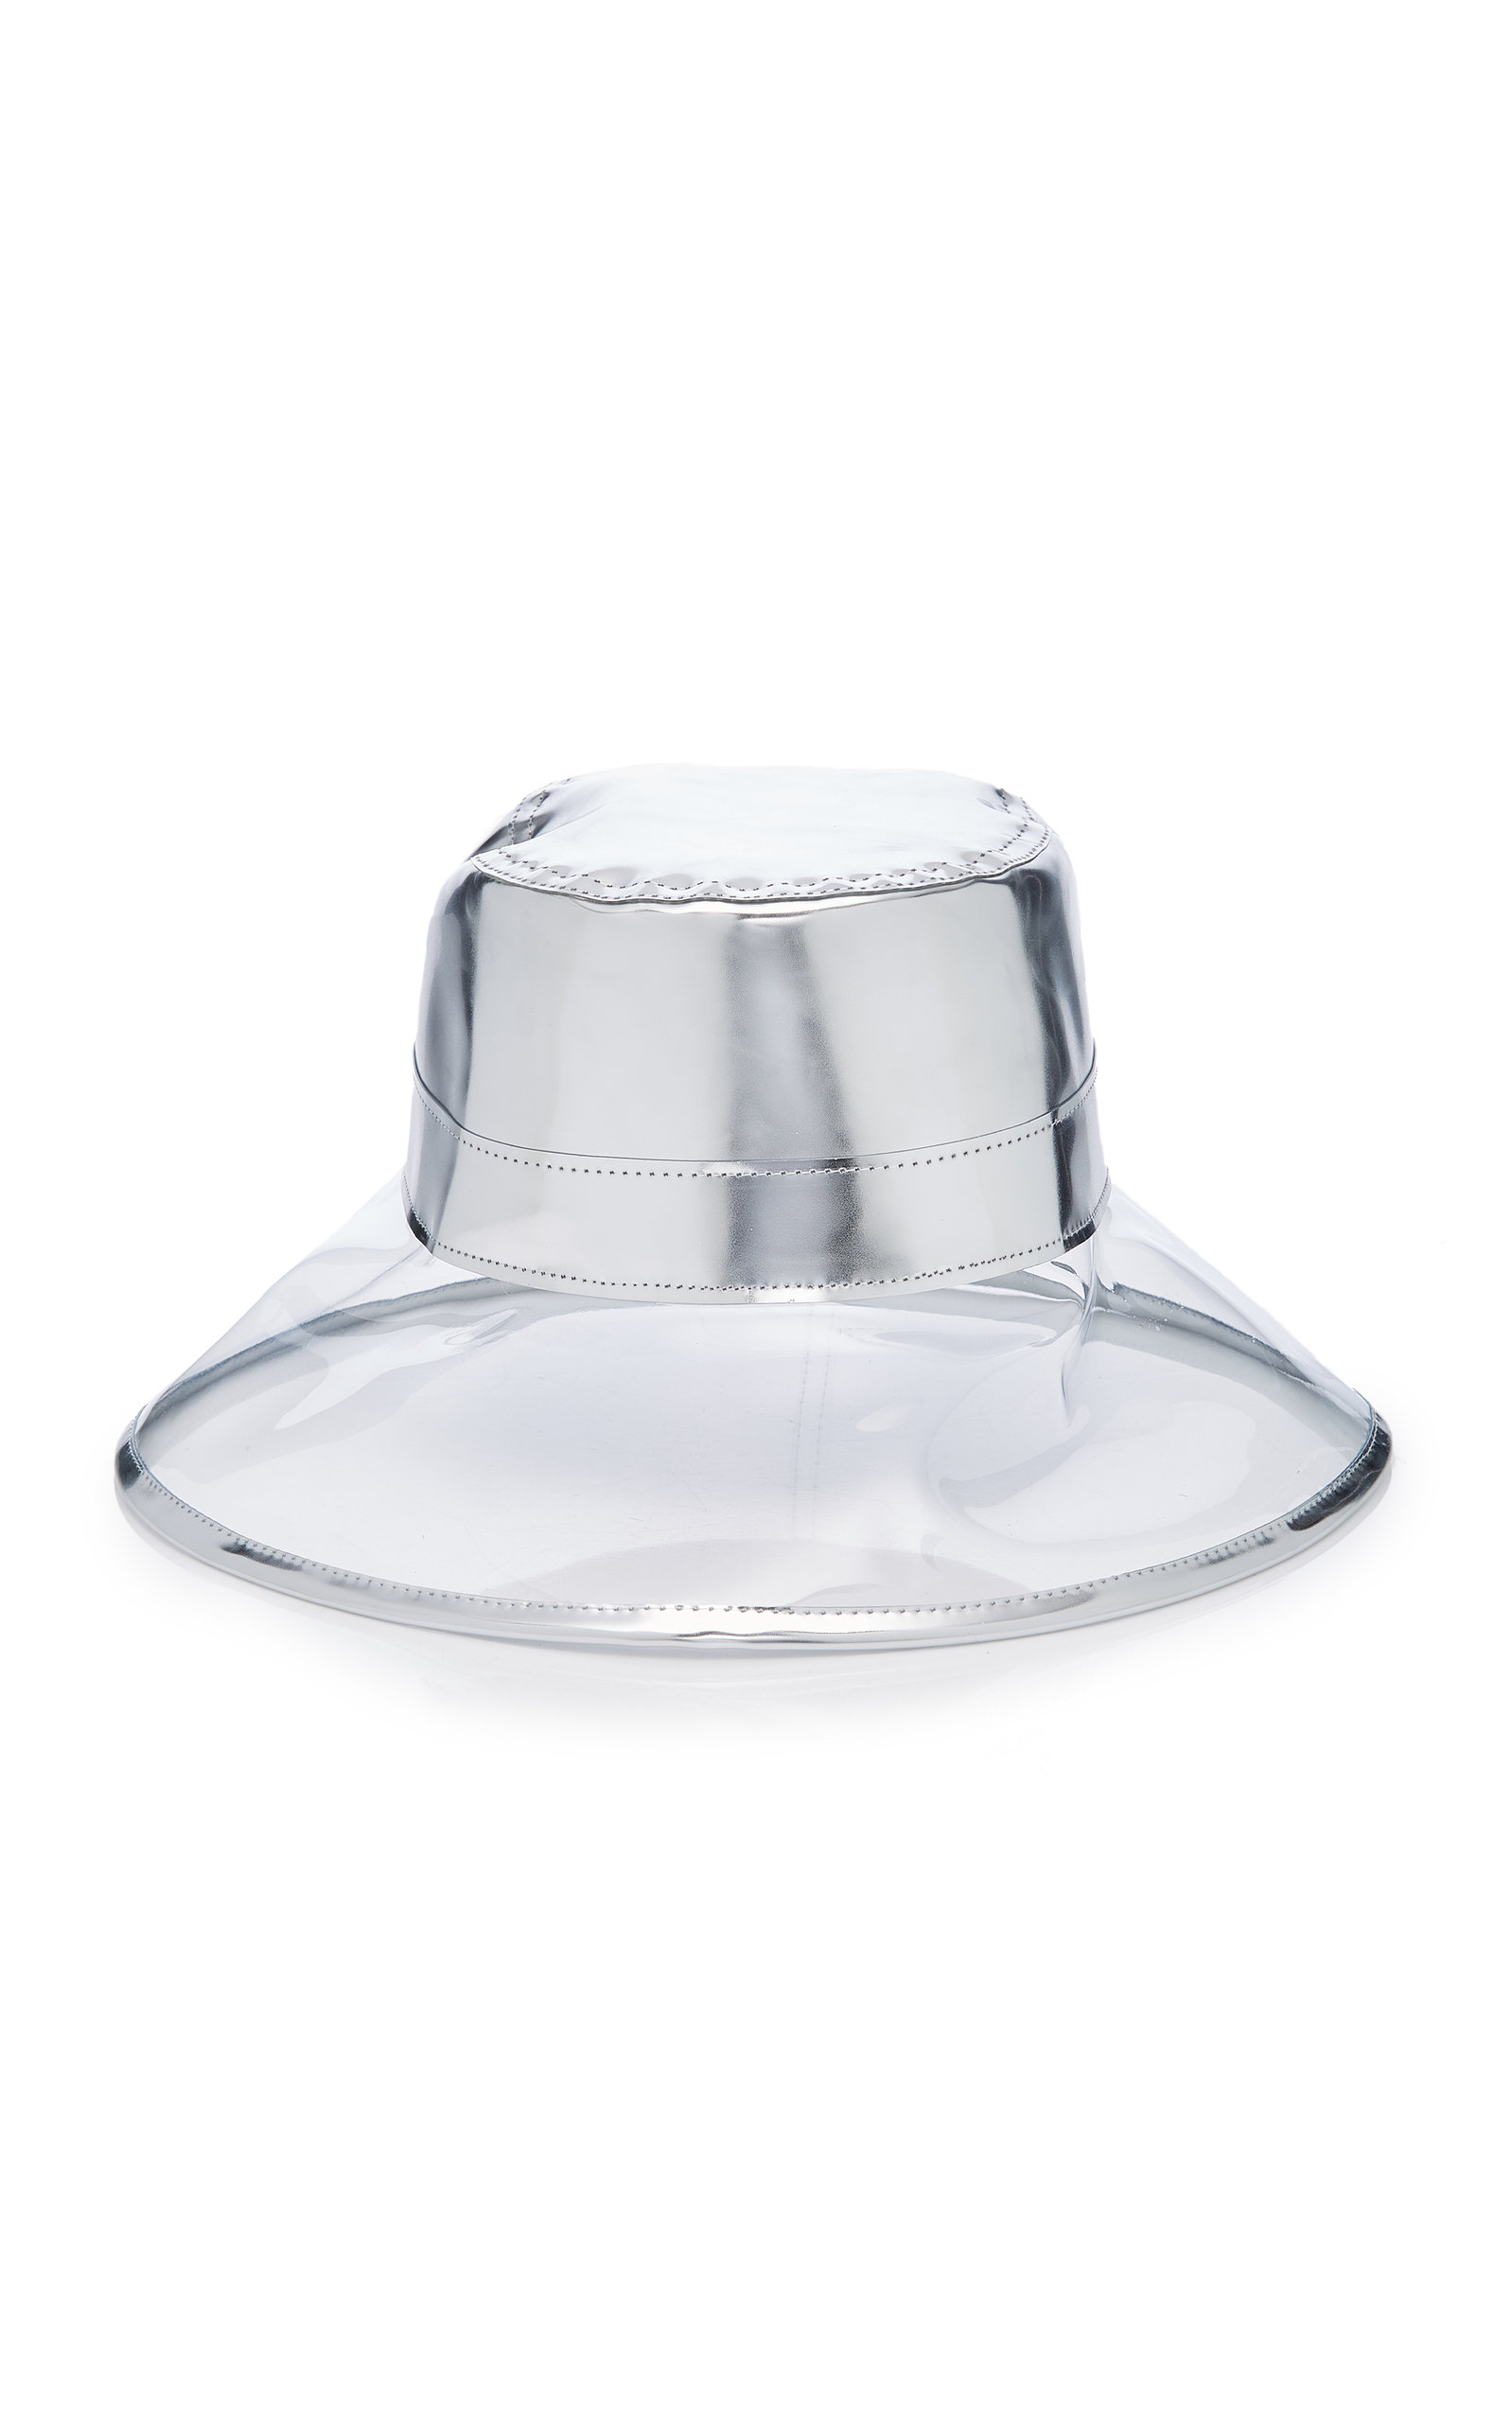 Eric Javits Hats GO-GO PATENT LEATHER AND PVC BUCKET HAT